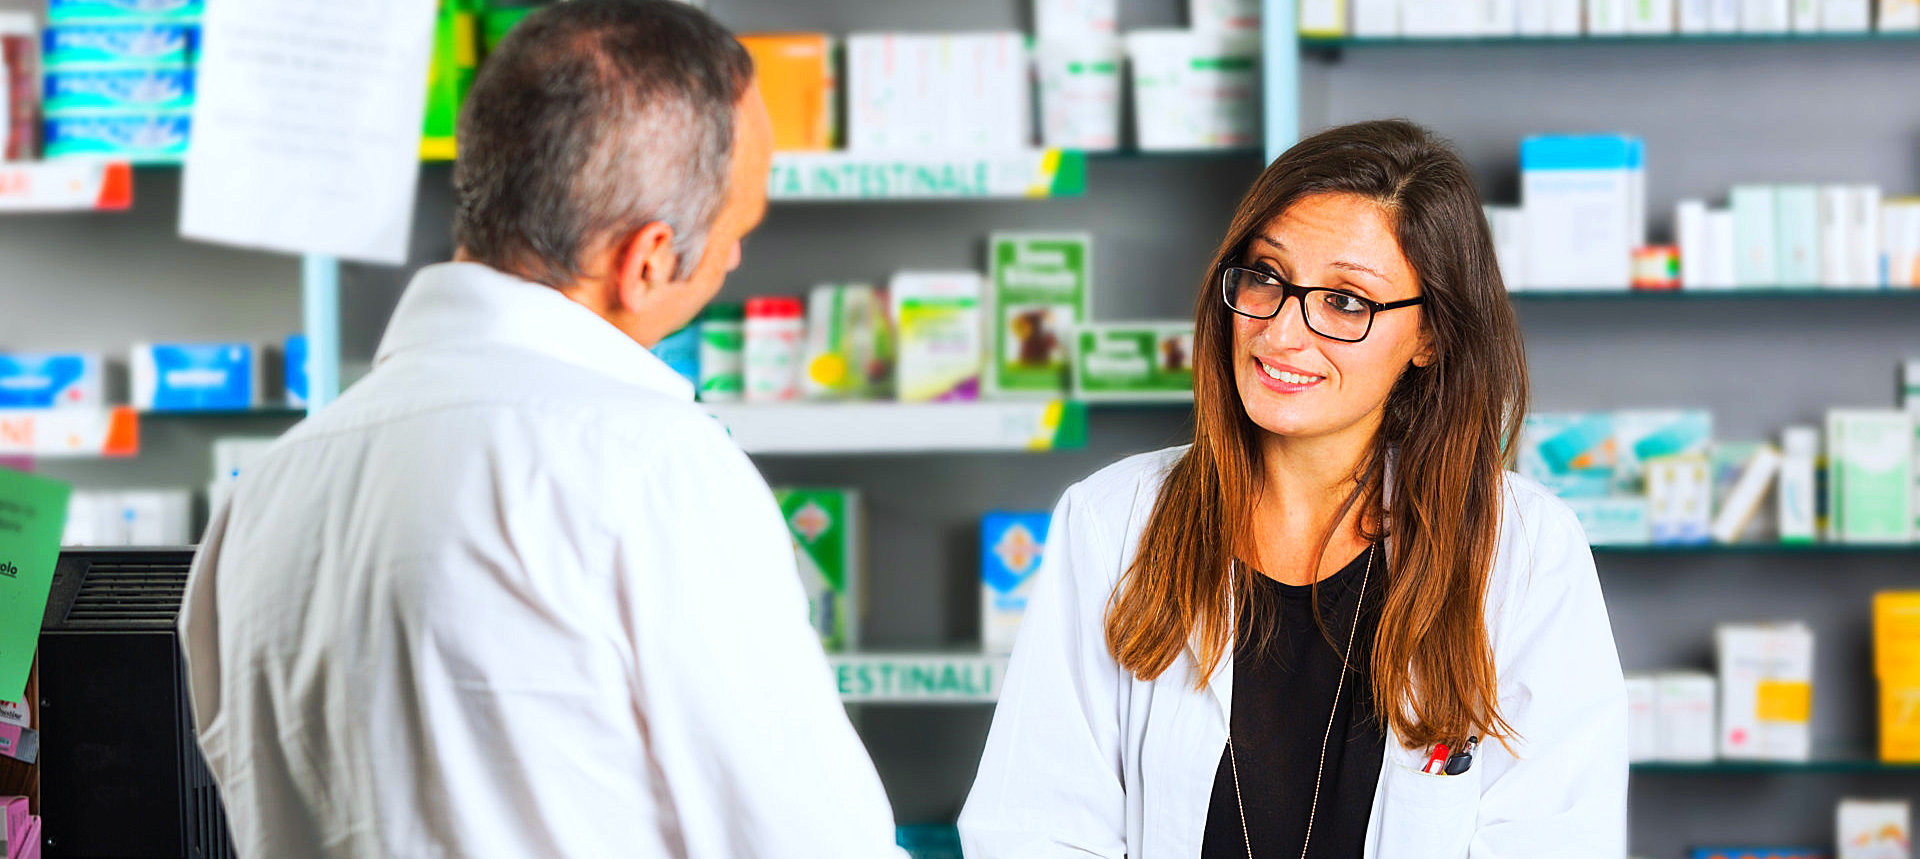 two pharmacists talking to each other